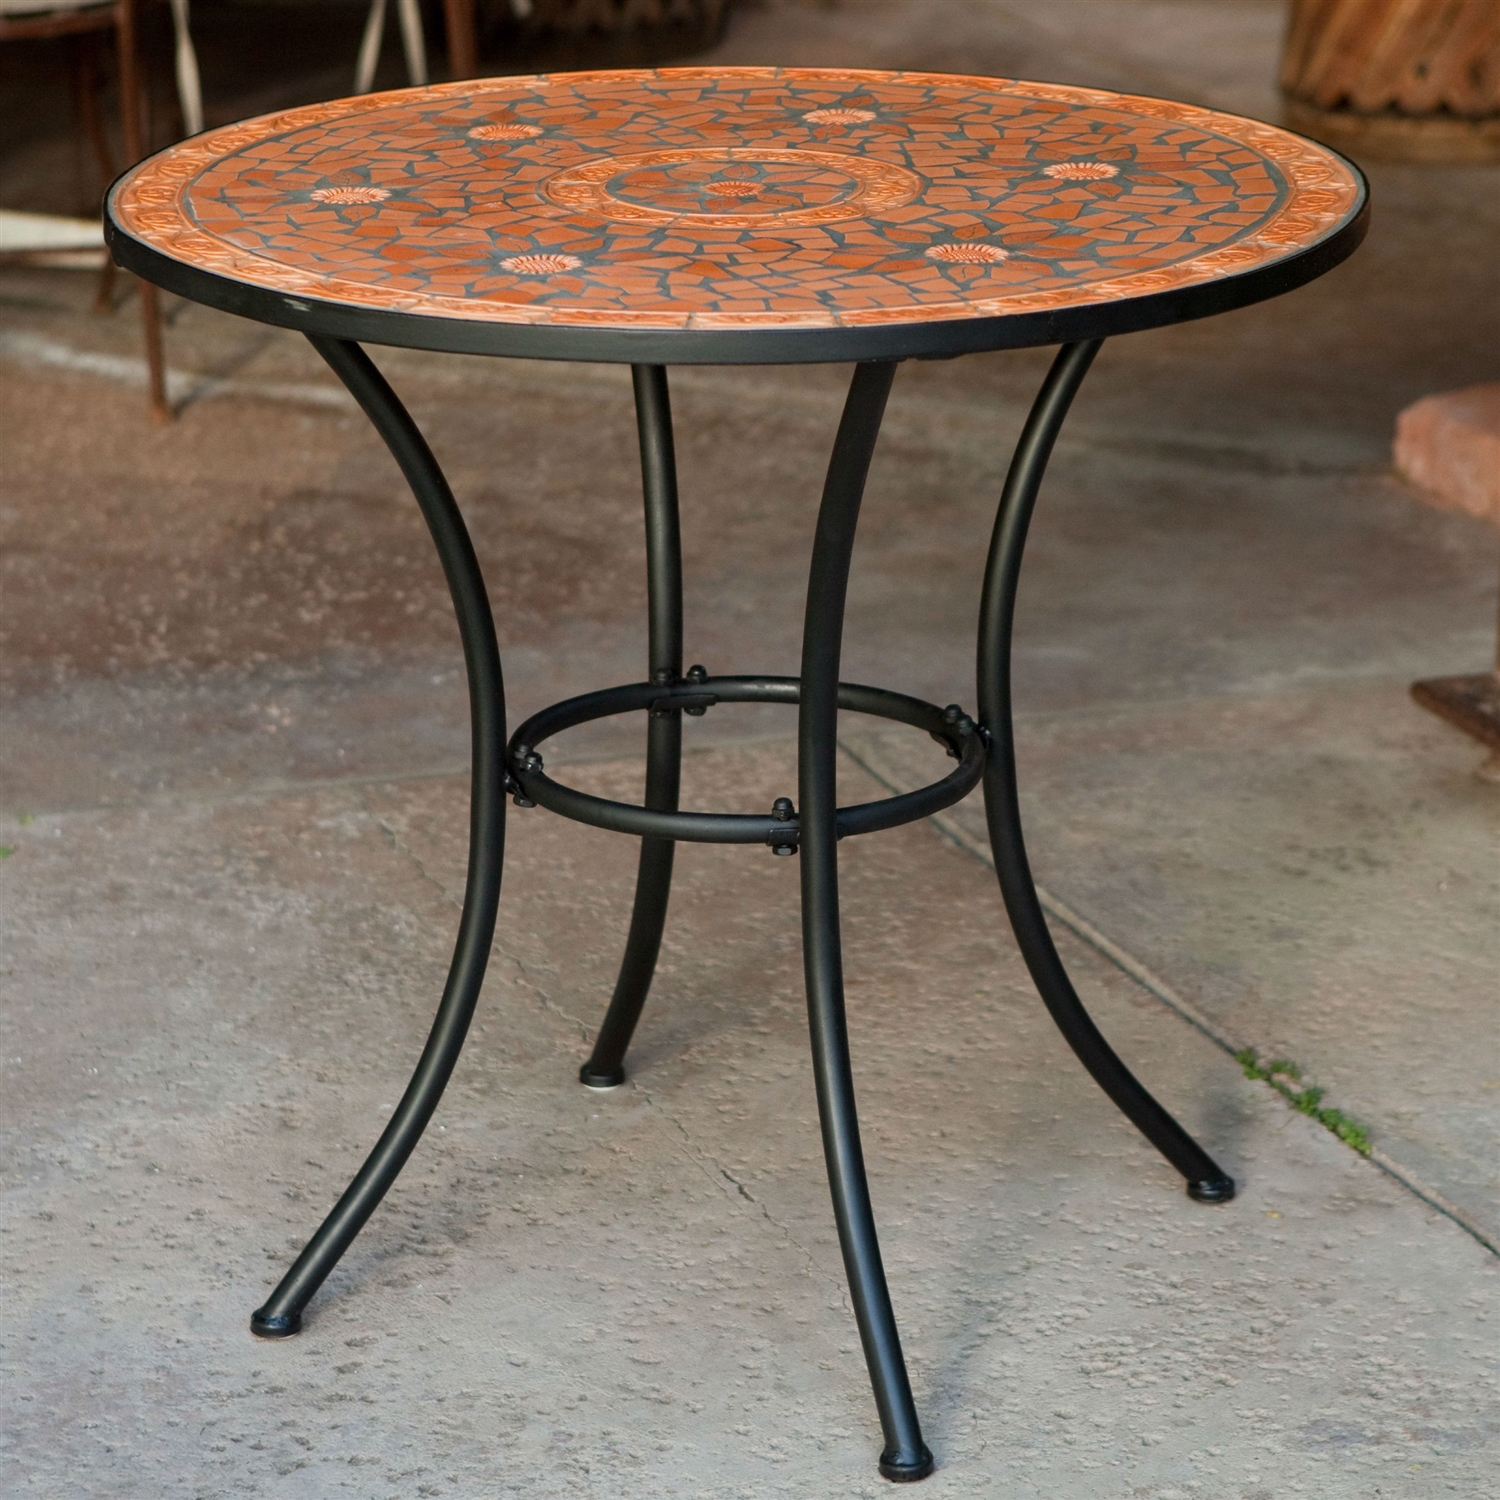 Round Outdoor Patio Bistro Table with Terracotta Mosaic Tiles and